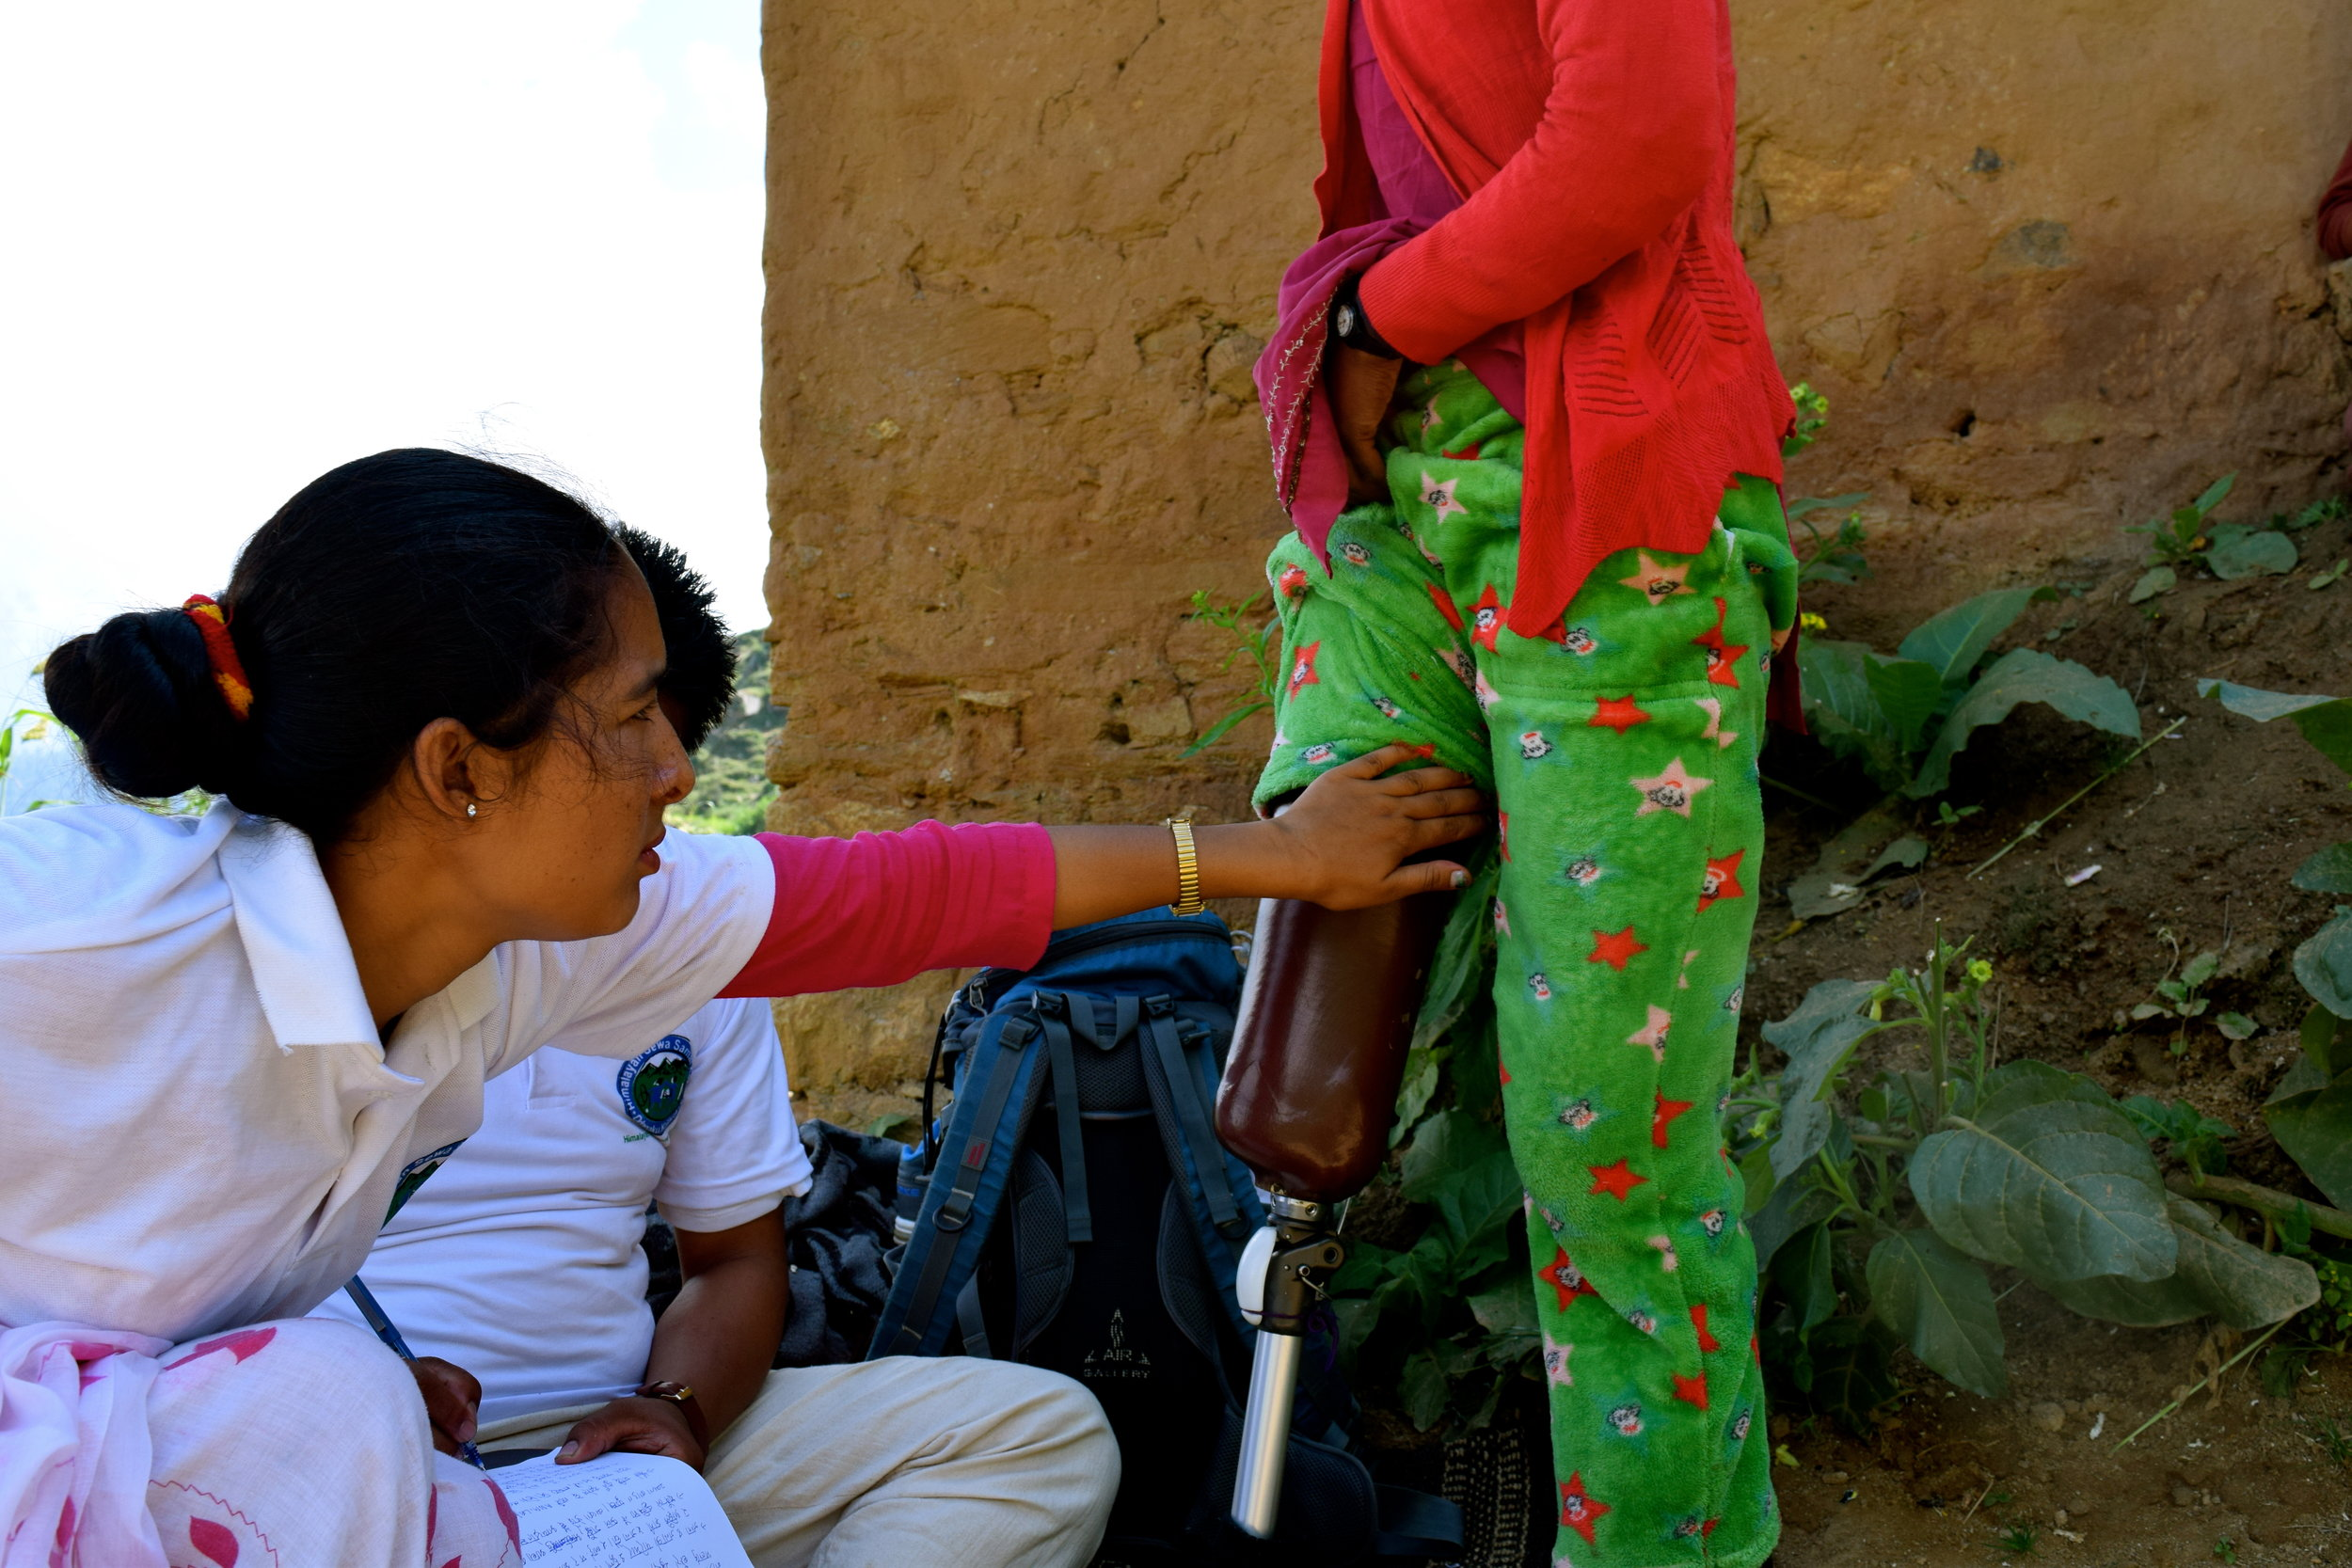 In September of 2017 Khalasha traveled to the village of Chaapre to conduct follow-up interviews from our 2016-2017 Prosthetic Camp